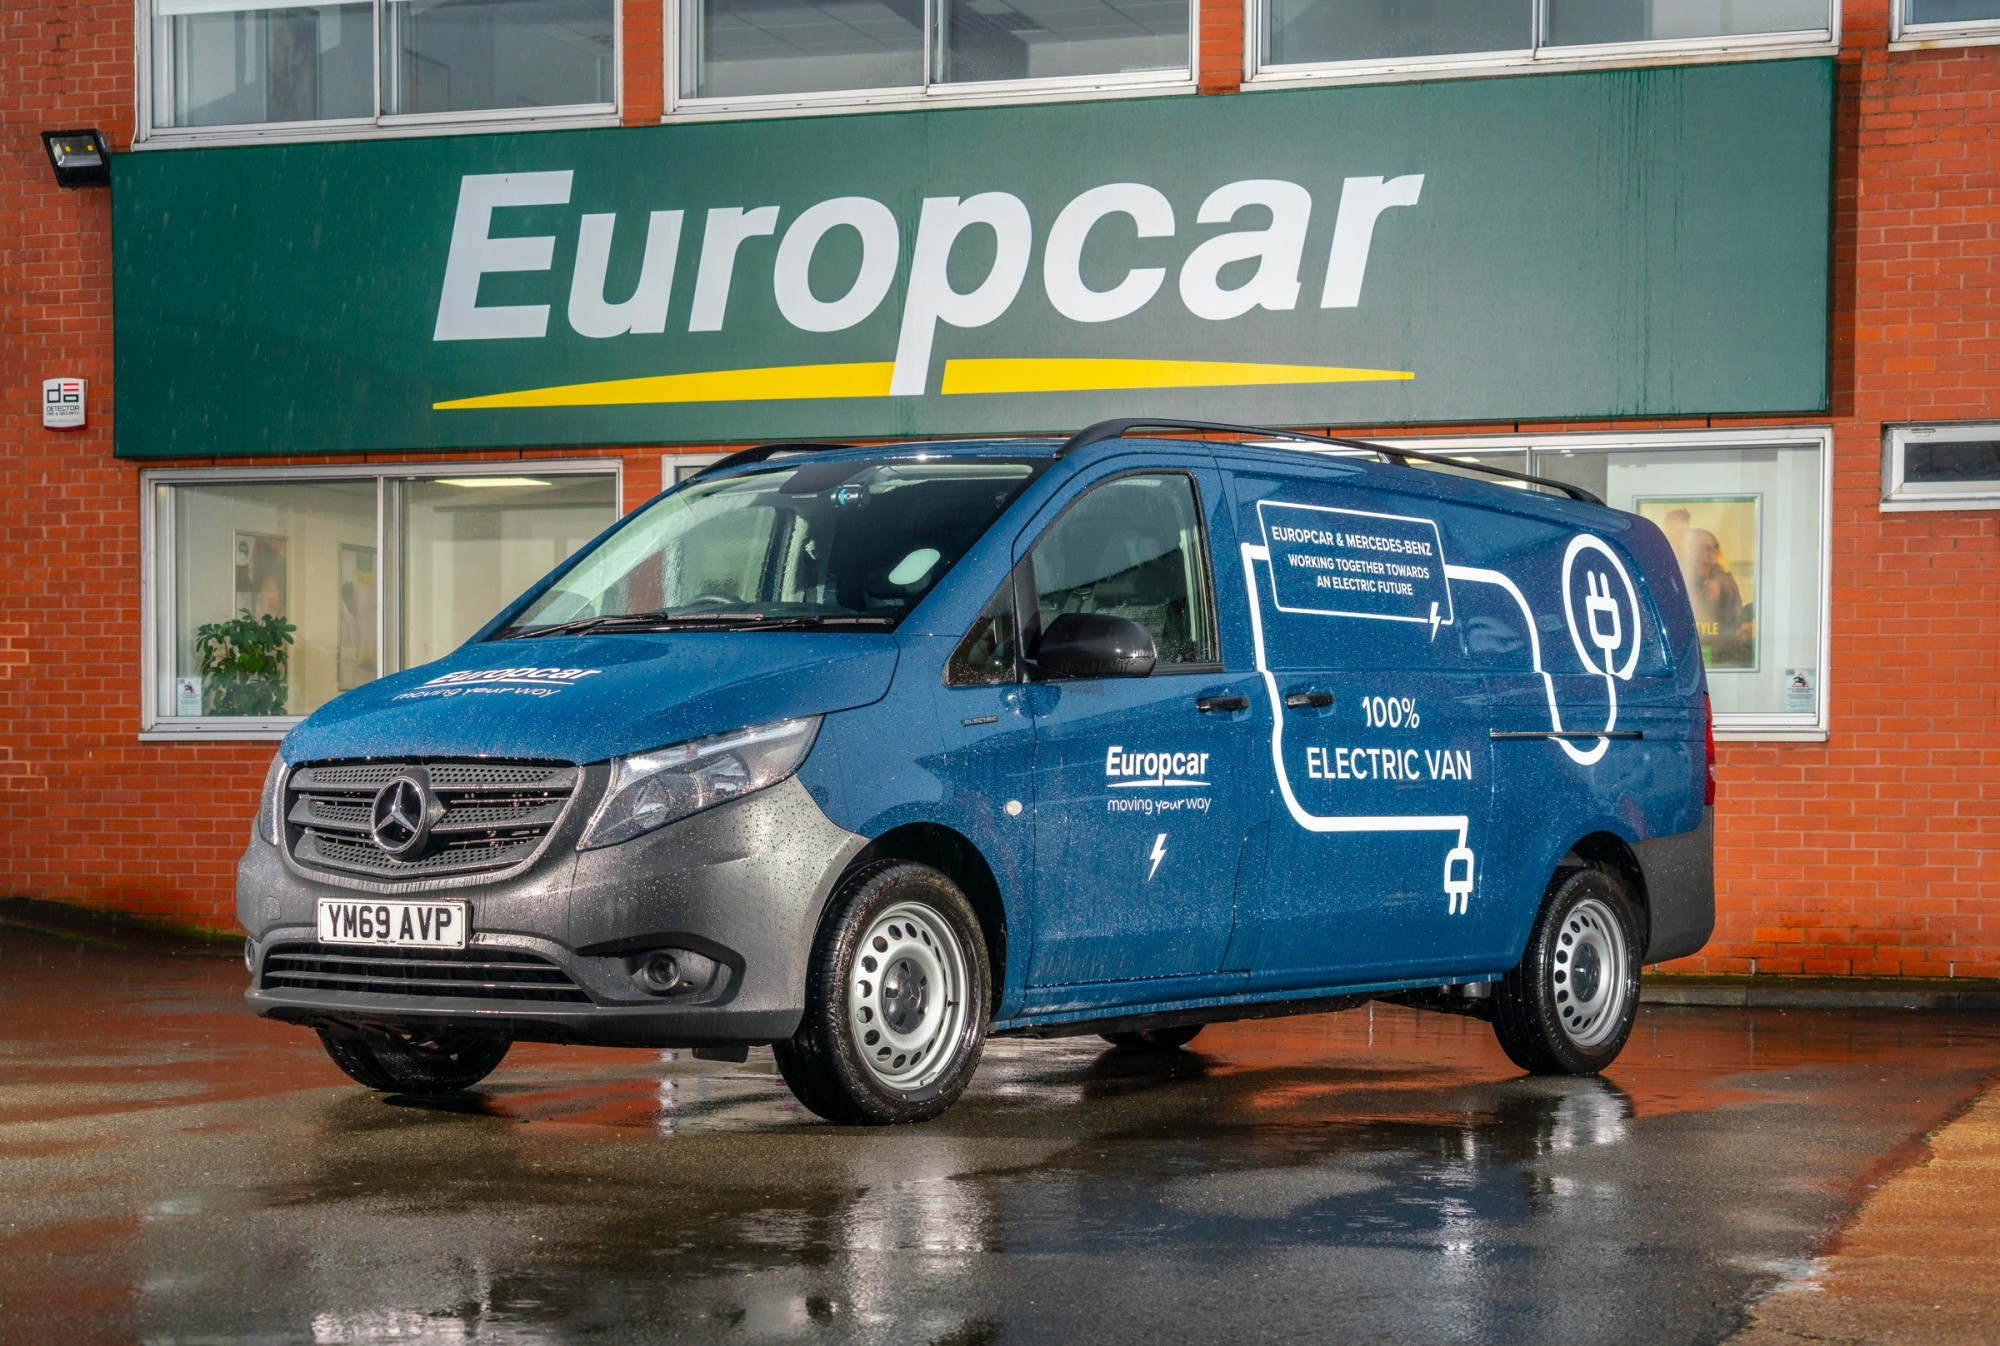 Europcar Partners With Mercedes-Benz To Help Businesses Put Electric Van Technology To The Test